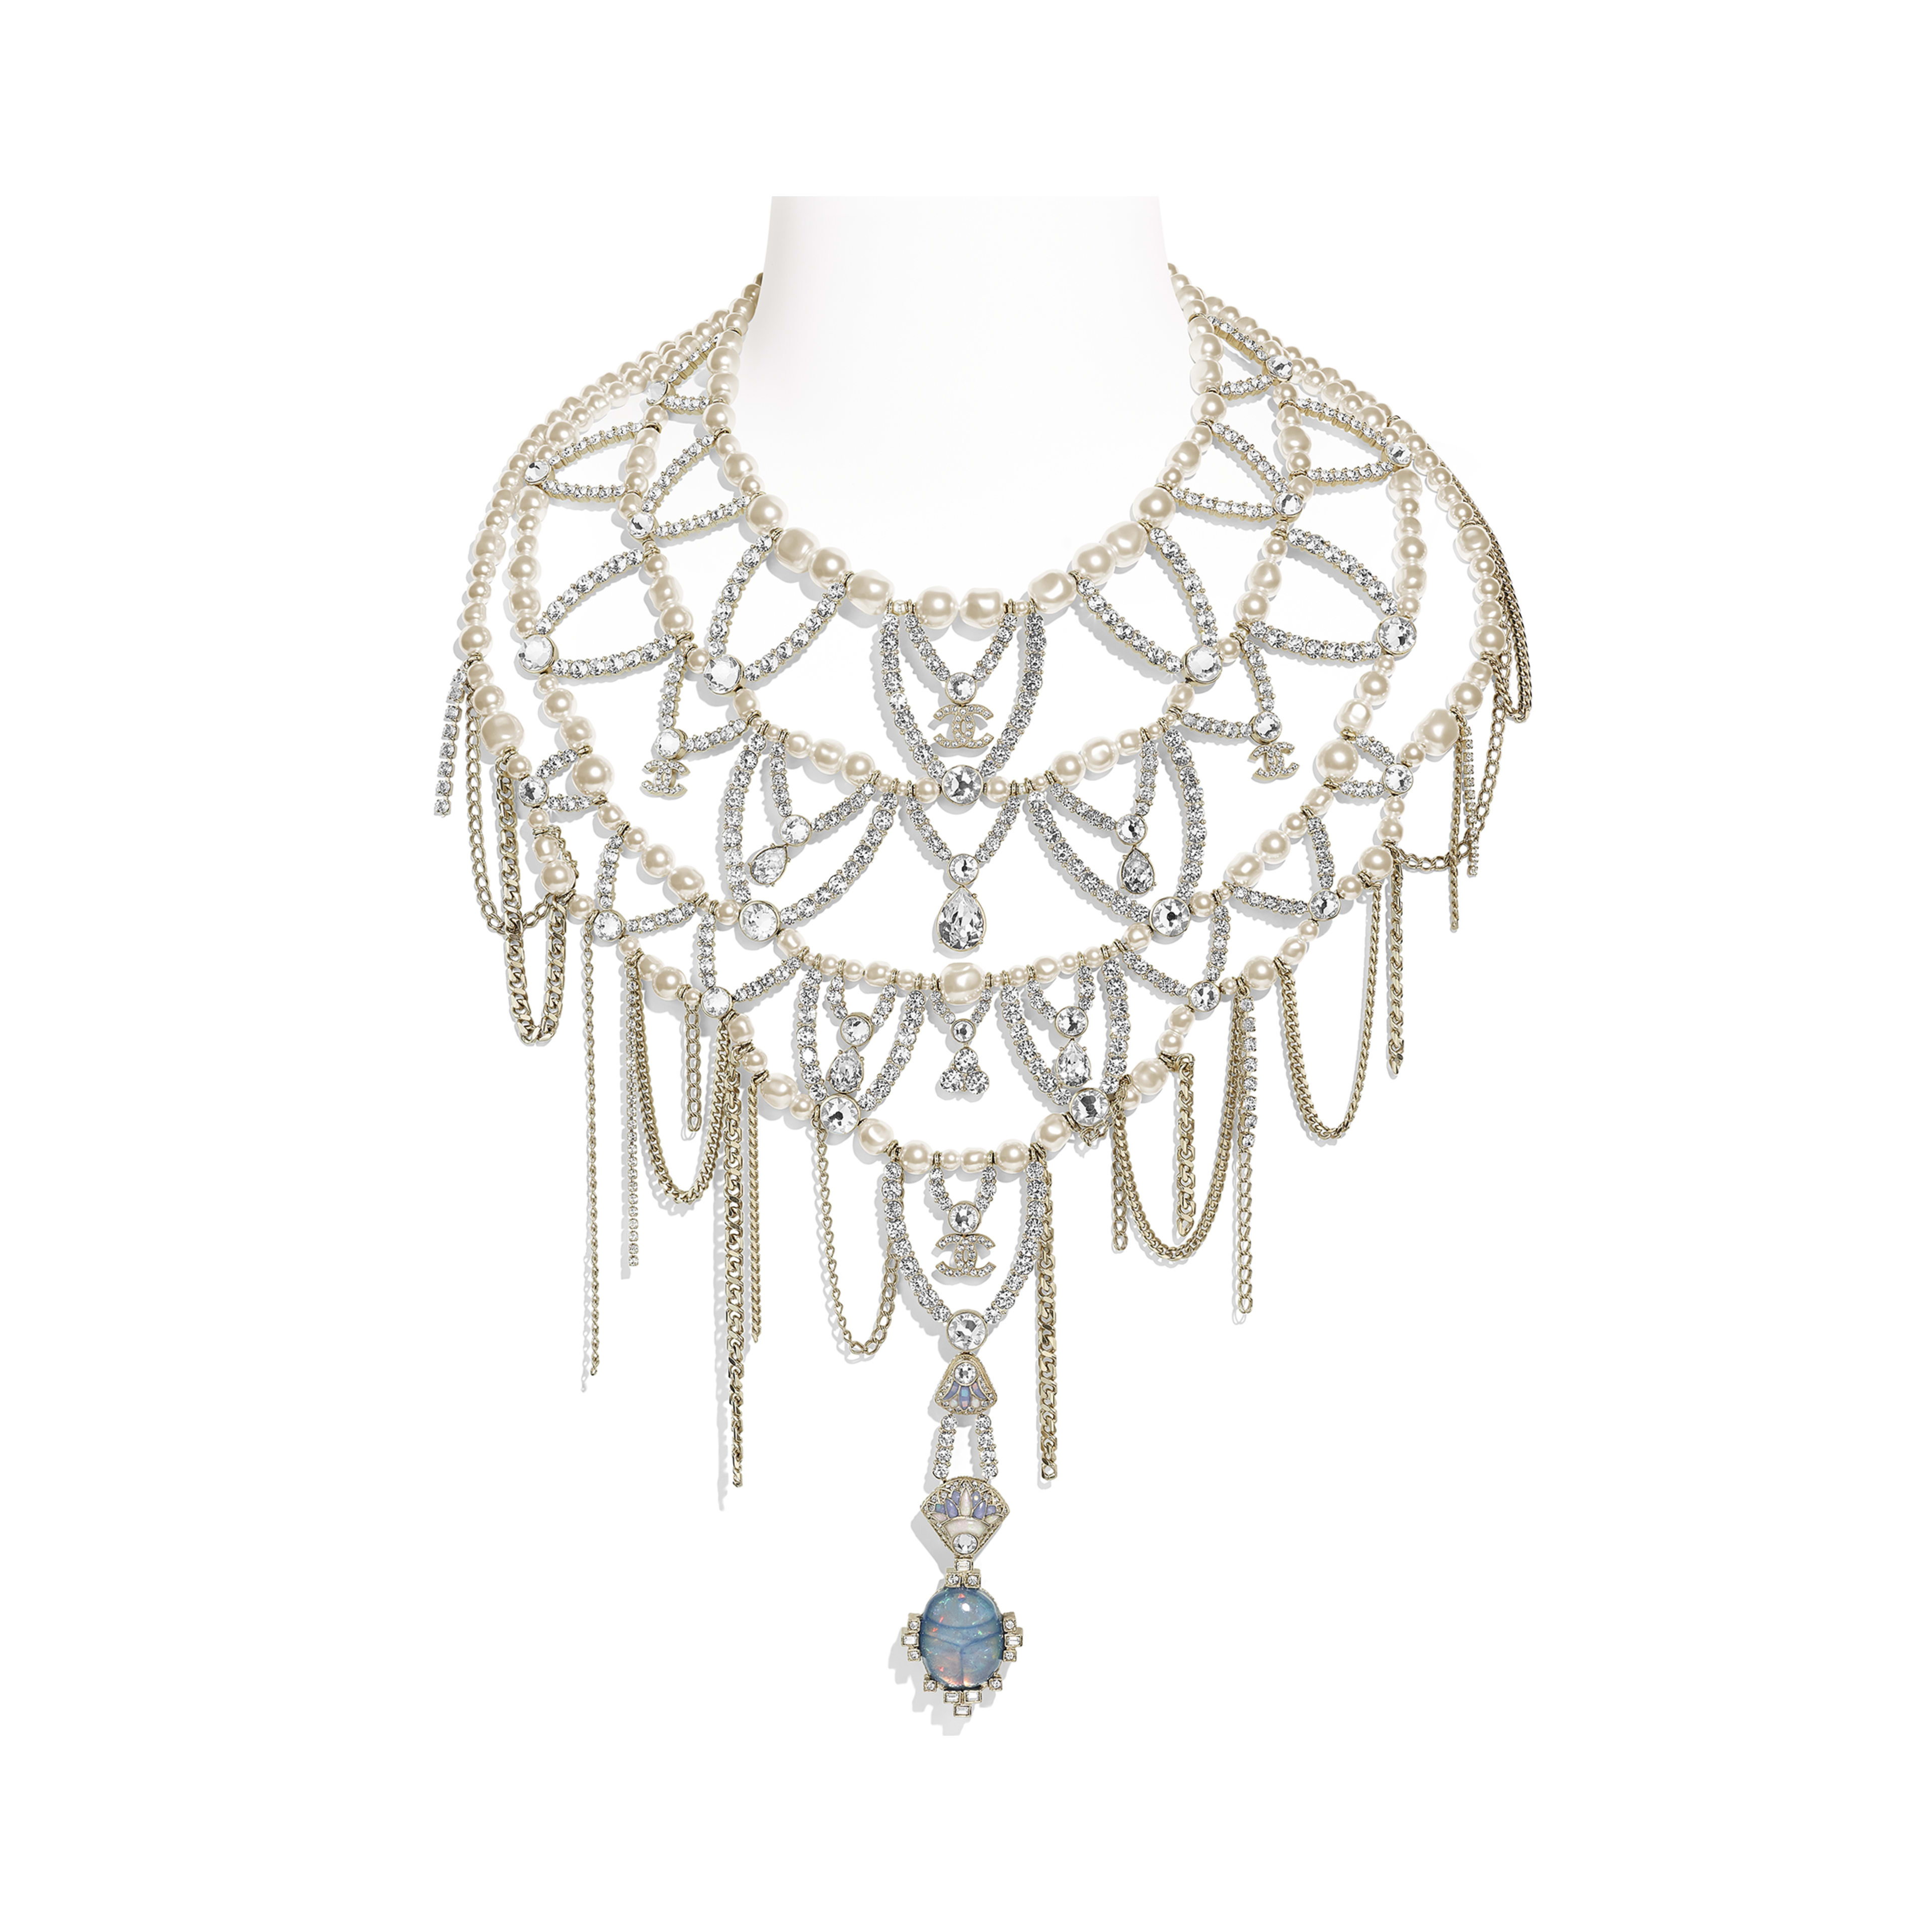 Necklace - Gold, Pearly White & Crystal - Metal, Glass Pearls, Strass & Resin - Default view - see full sized version